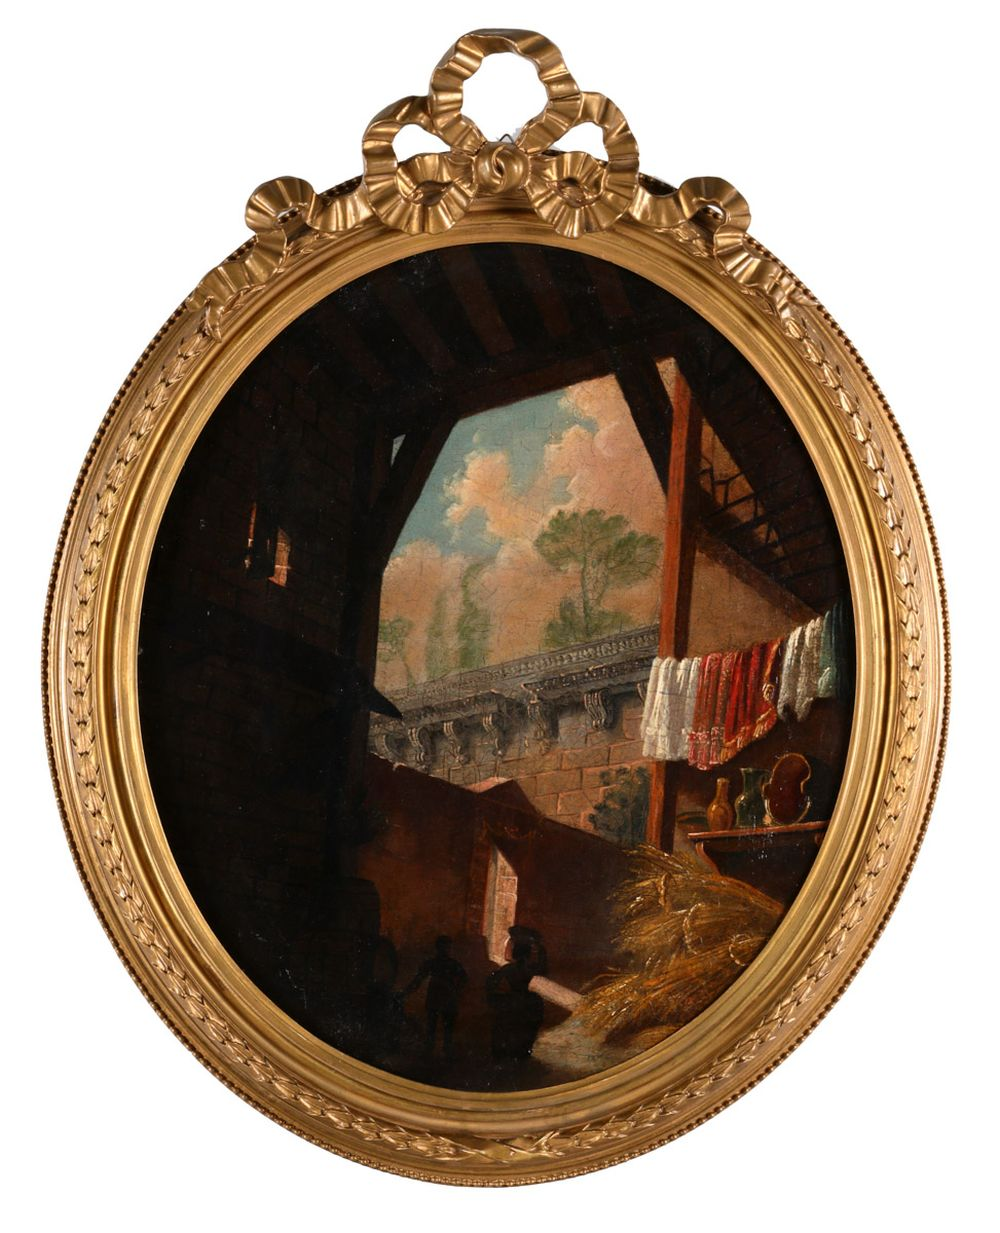 FRENCH SCHOOL (18TH CENTURY), EXTERIOR SCENE WITH FIGURES